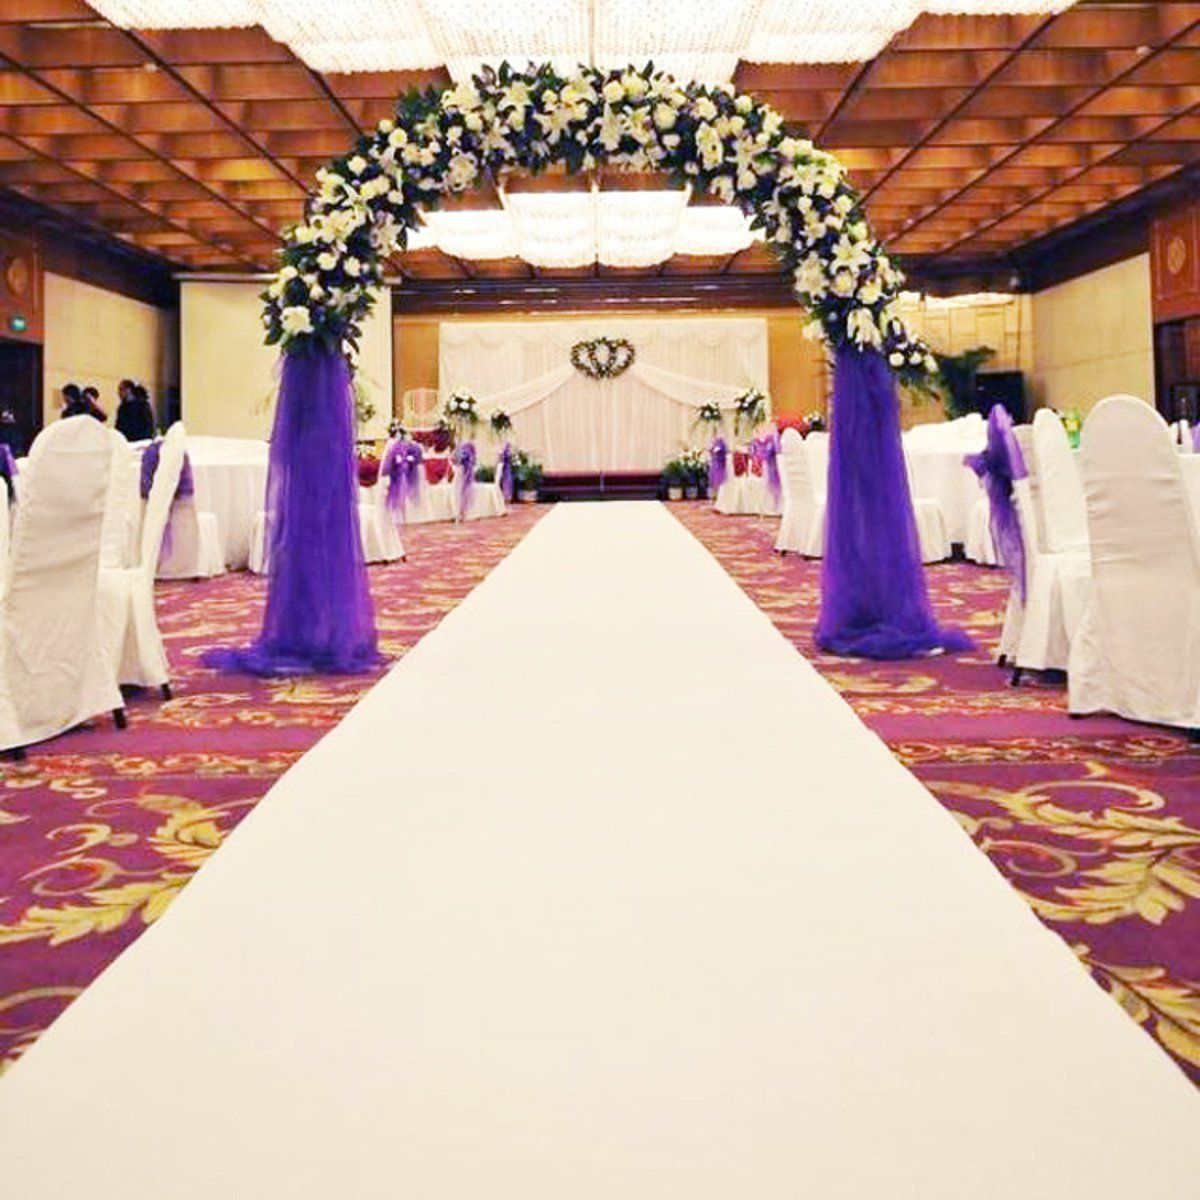 10x1m Wedding Aisle Floor Runner White Carpet Hollywood Awards Party Decoration Polyester Floor Rug Runner Party Events Supplies10x1m Wedding Aisle Floor Runner White Carpet Hollywood Awards Party Decoration Polyester Floor Rug Runner Party Events Supplies